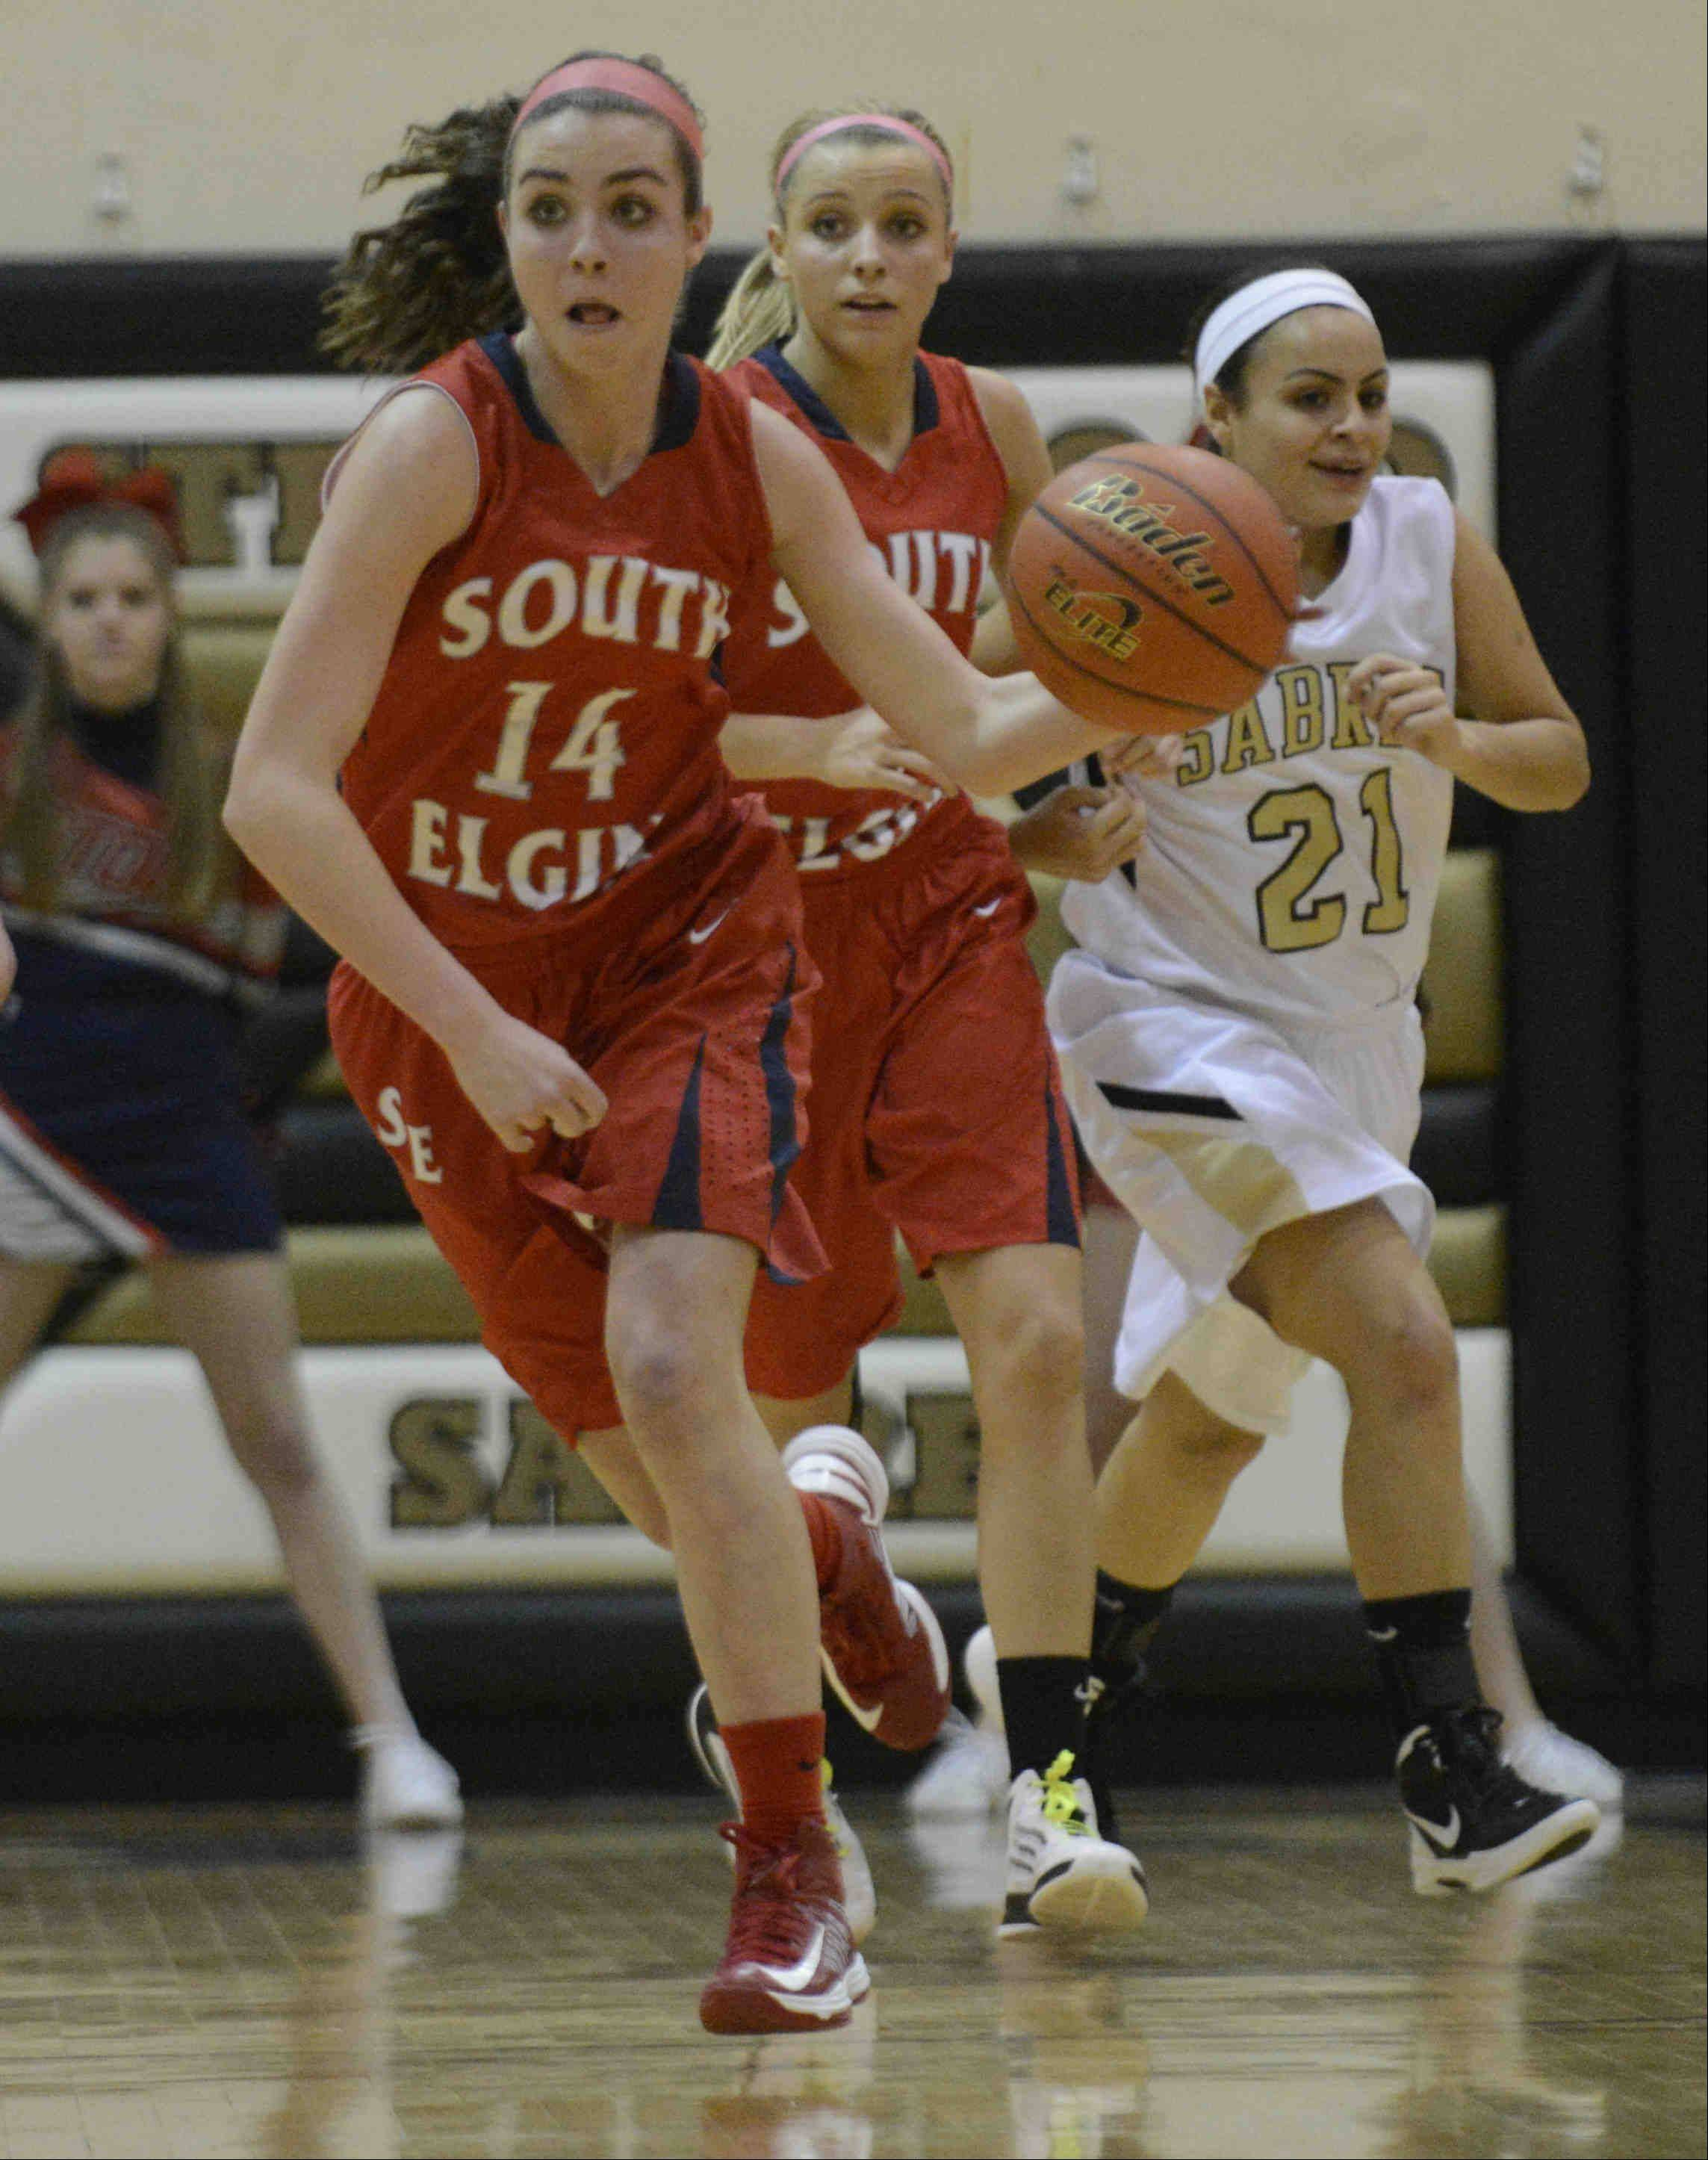 Images from the Streamwood vs. South Elgin regional championship game Thursday, February 14, 2013.